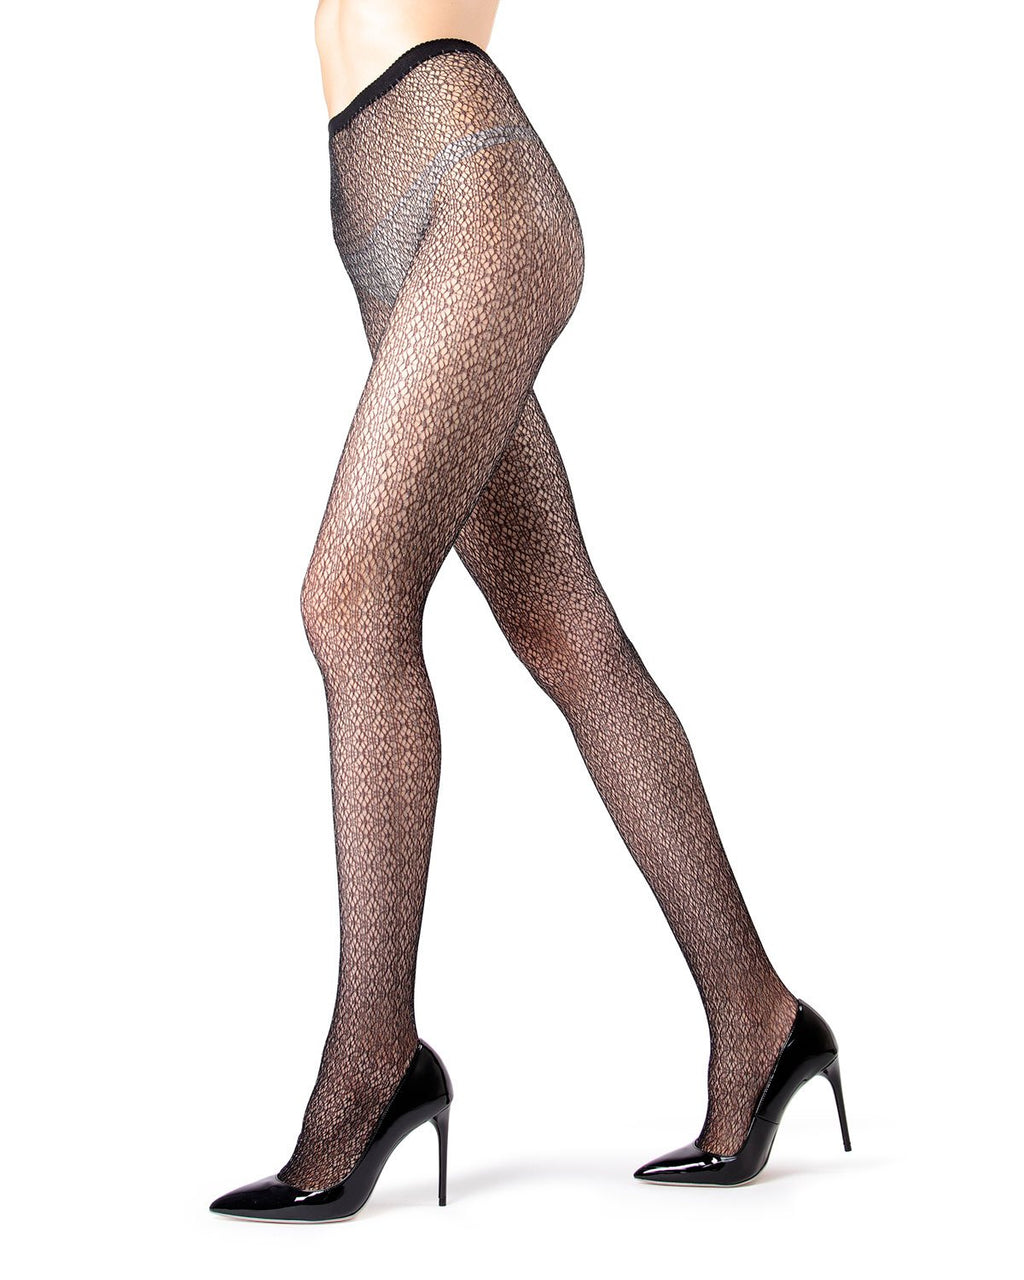 MeMoi | Black/Silver Crochet Lurex Net Tights | Women's Tights